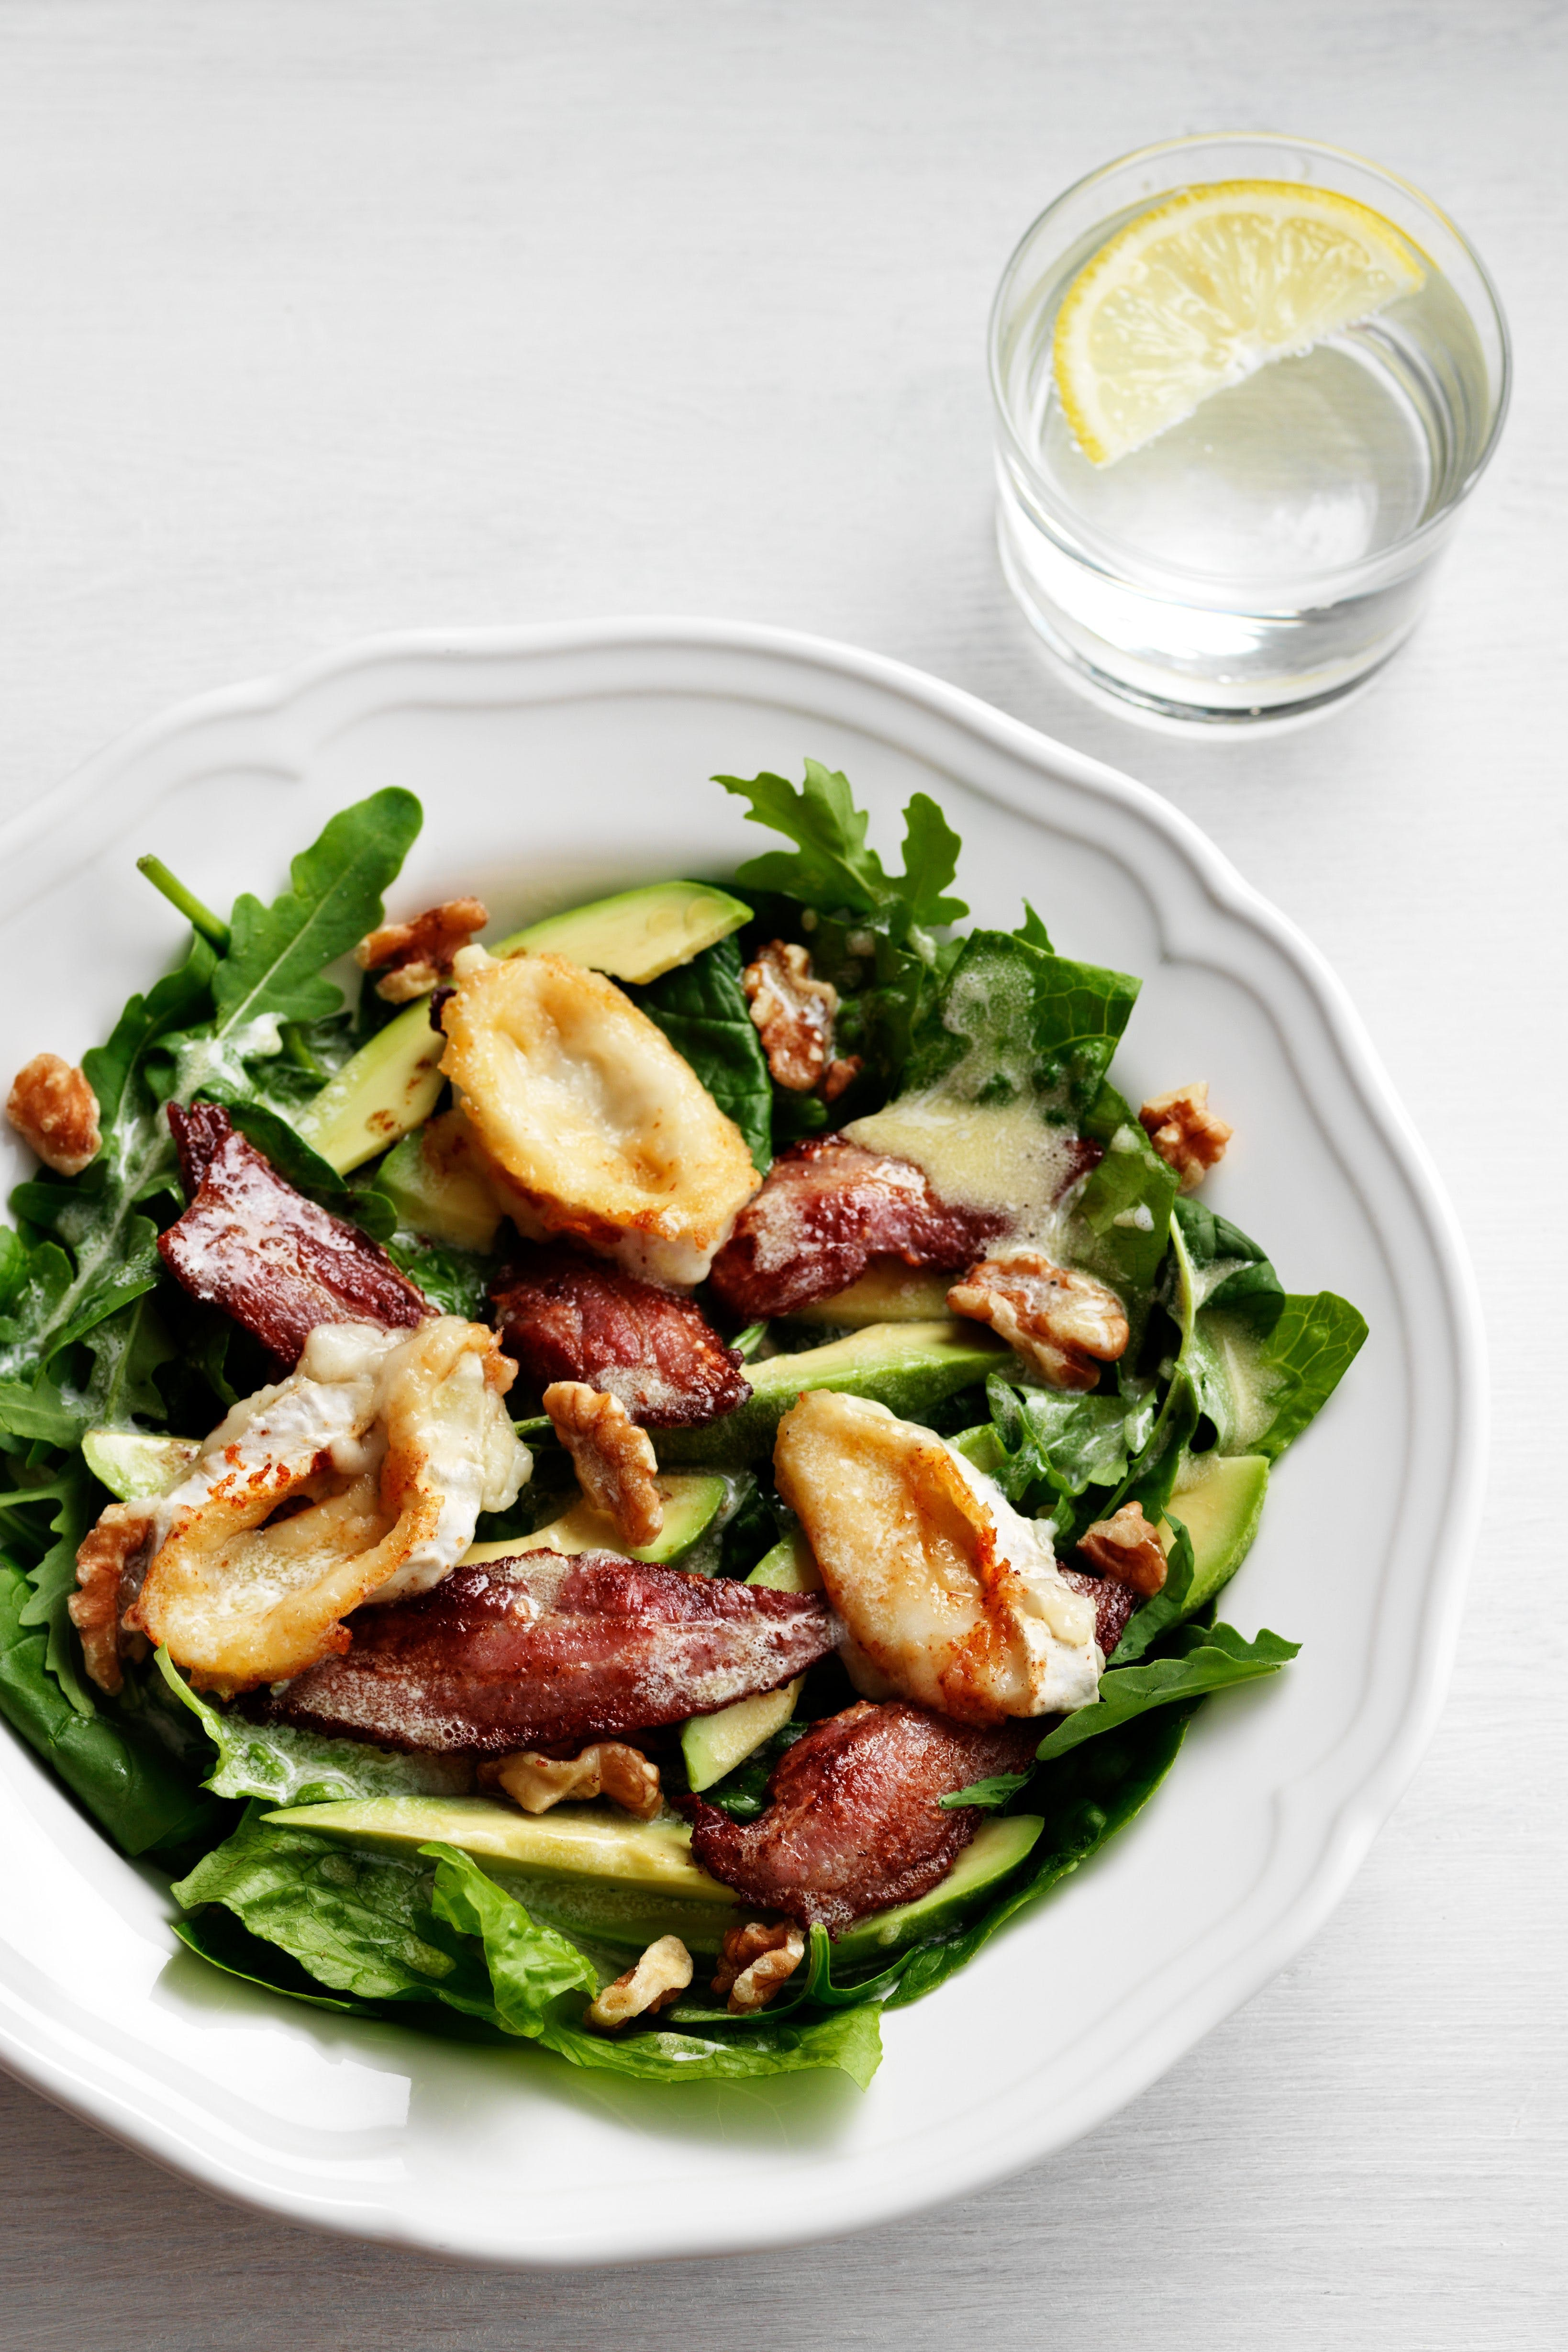 Keto avocado, bacon and goat-cheese salad